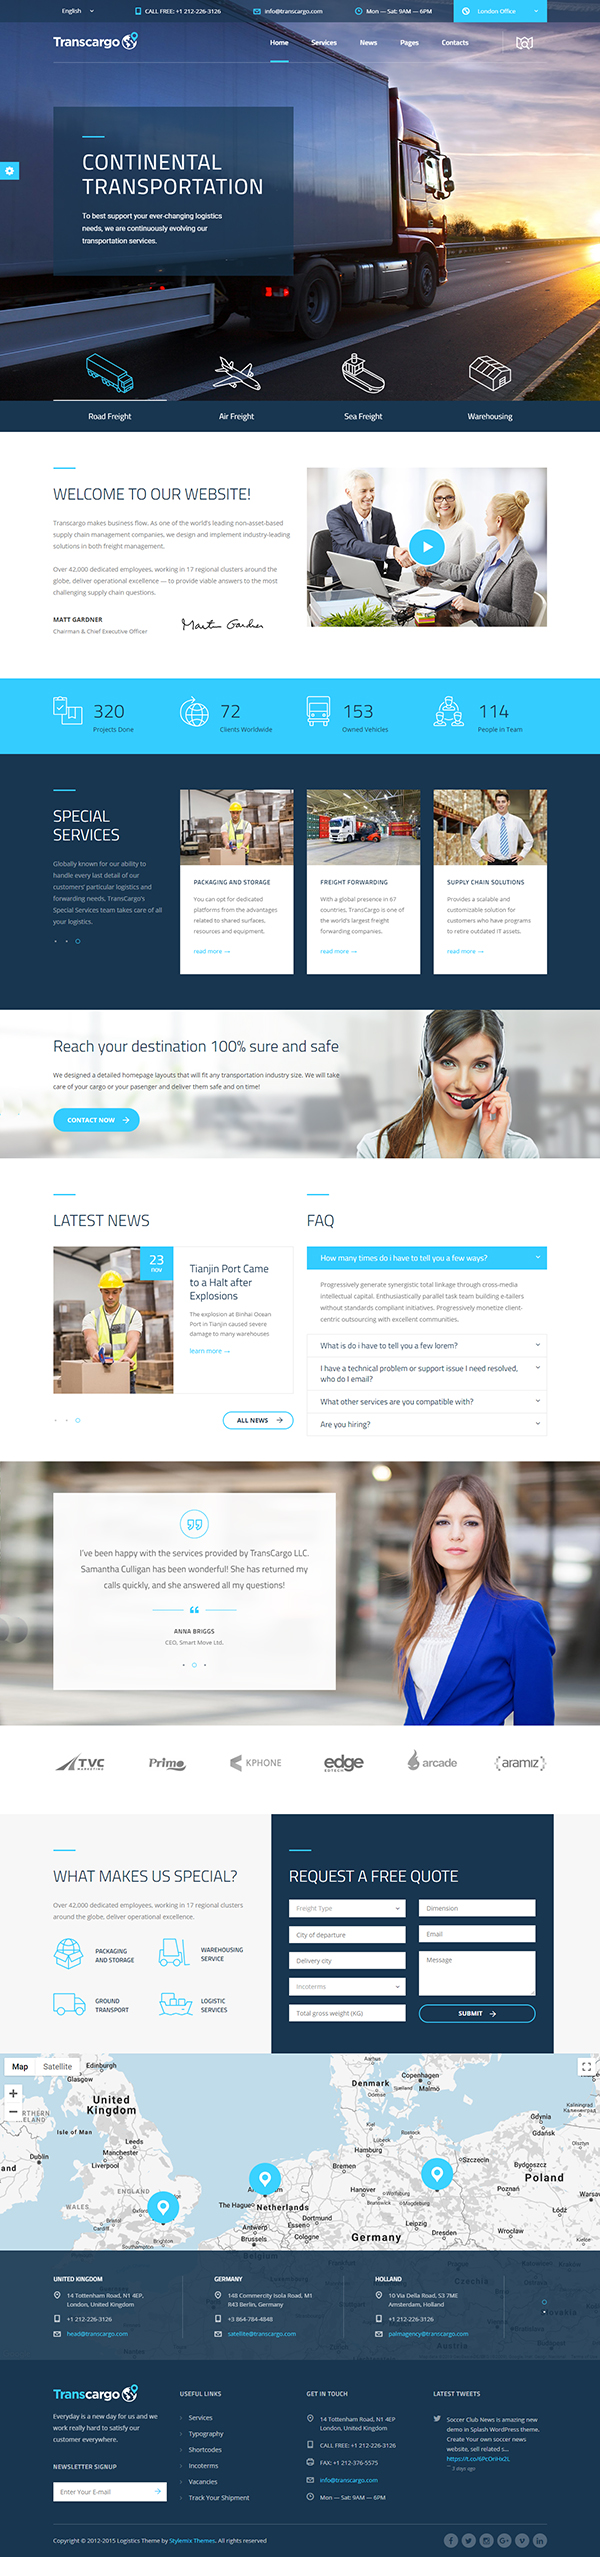 Transport WordPress Theme for Transportation, Logistics and Shipping Companies